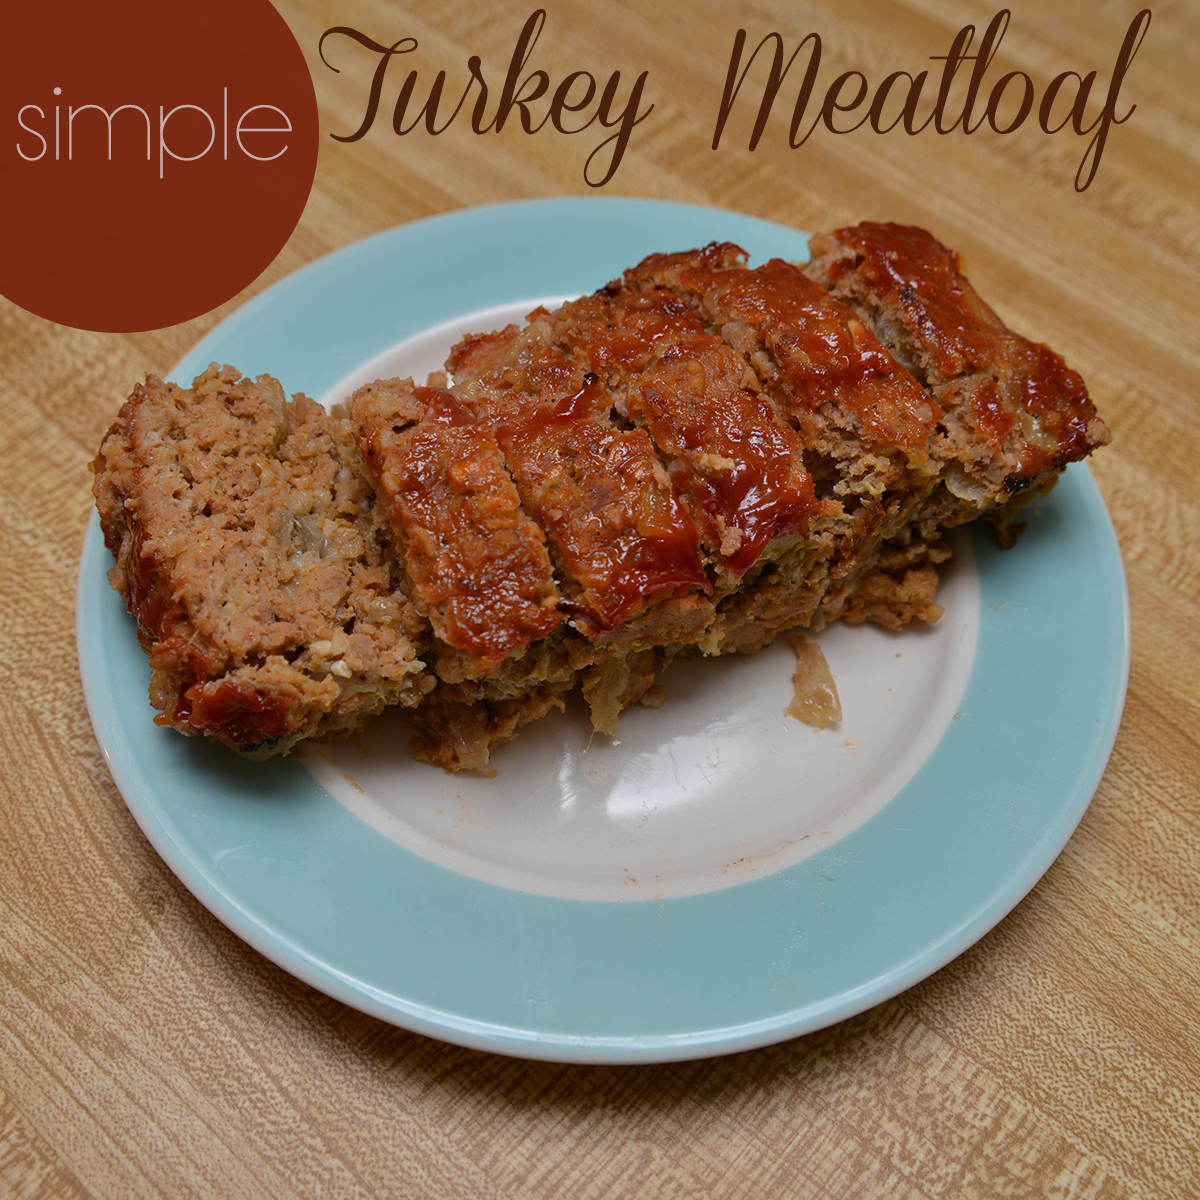 Simple Turkey Meatloaf | Whimsy & Hope